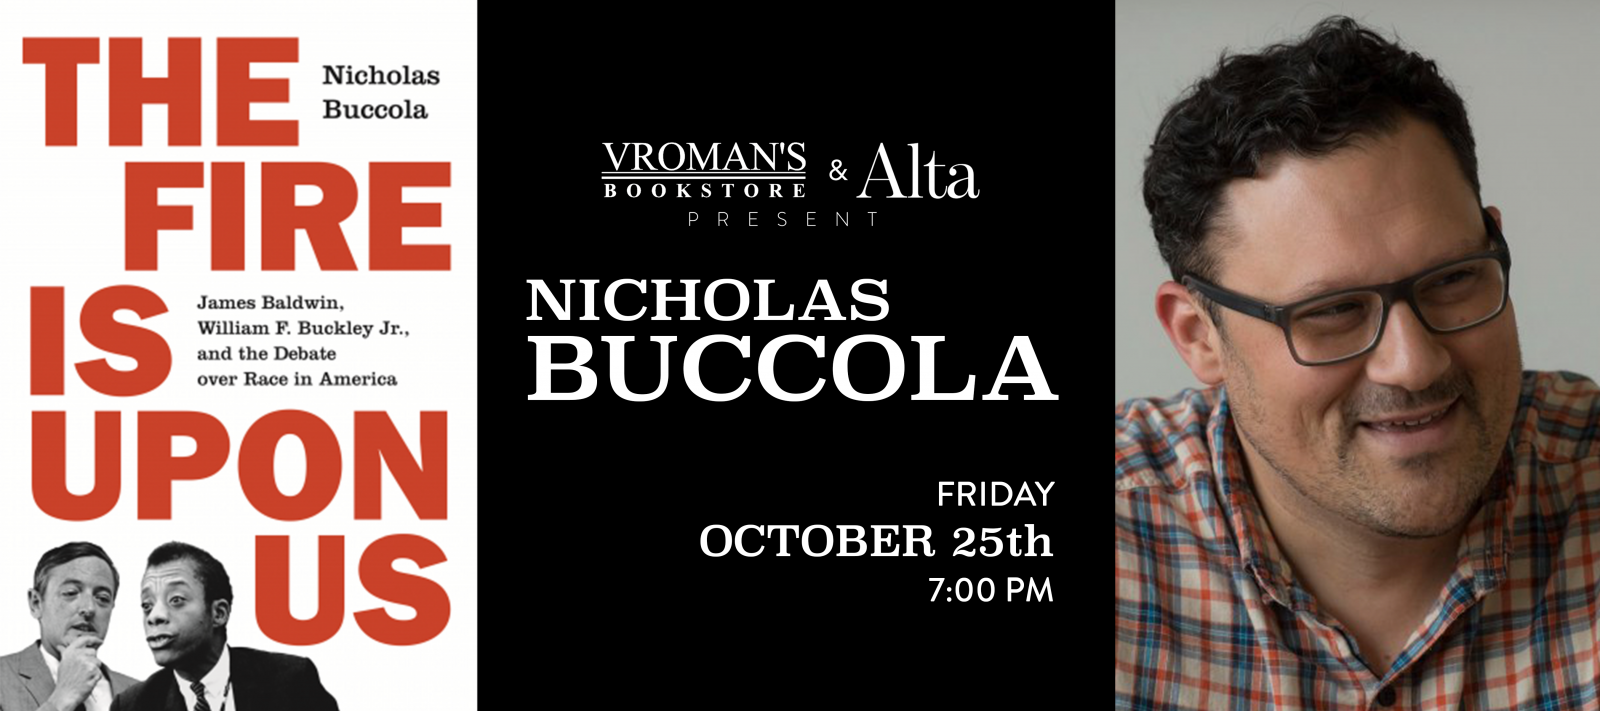 Nicholas Buccola book signing Friday October 25 at 7pm